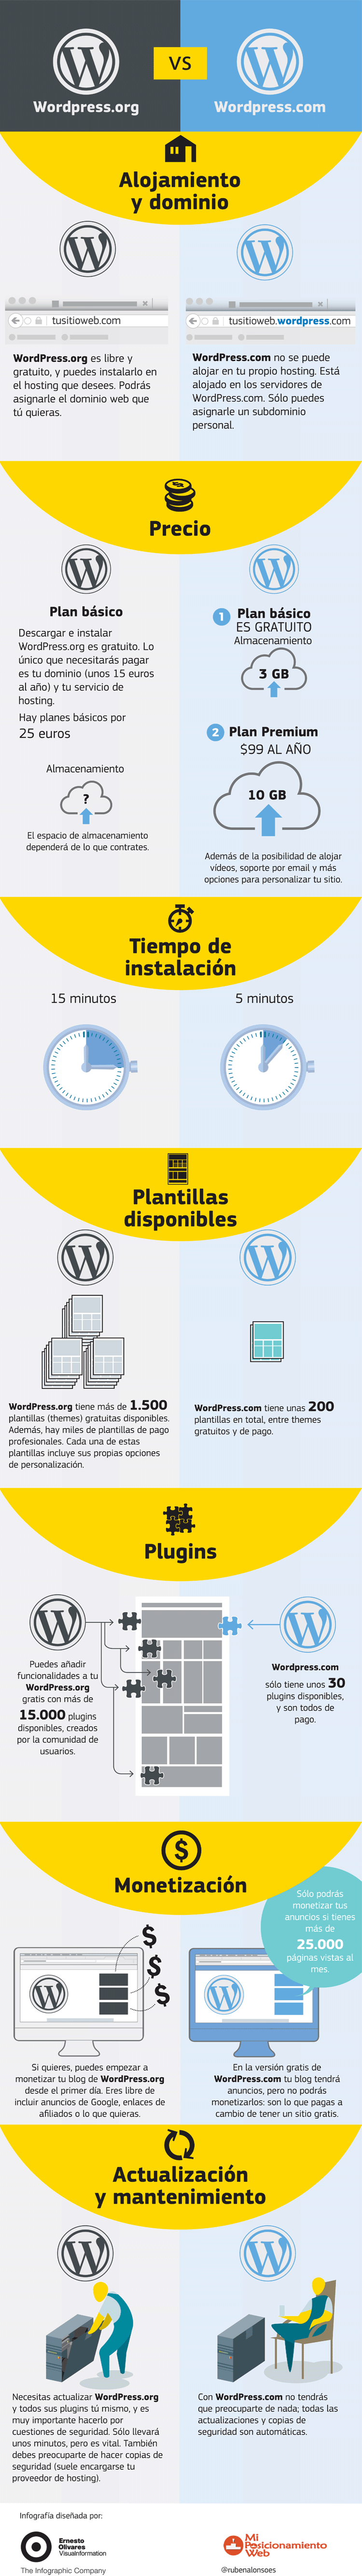 WordPress.com vs WordPress.org en miposicionamientoweb.es